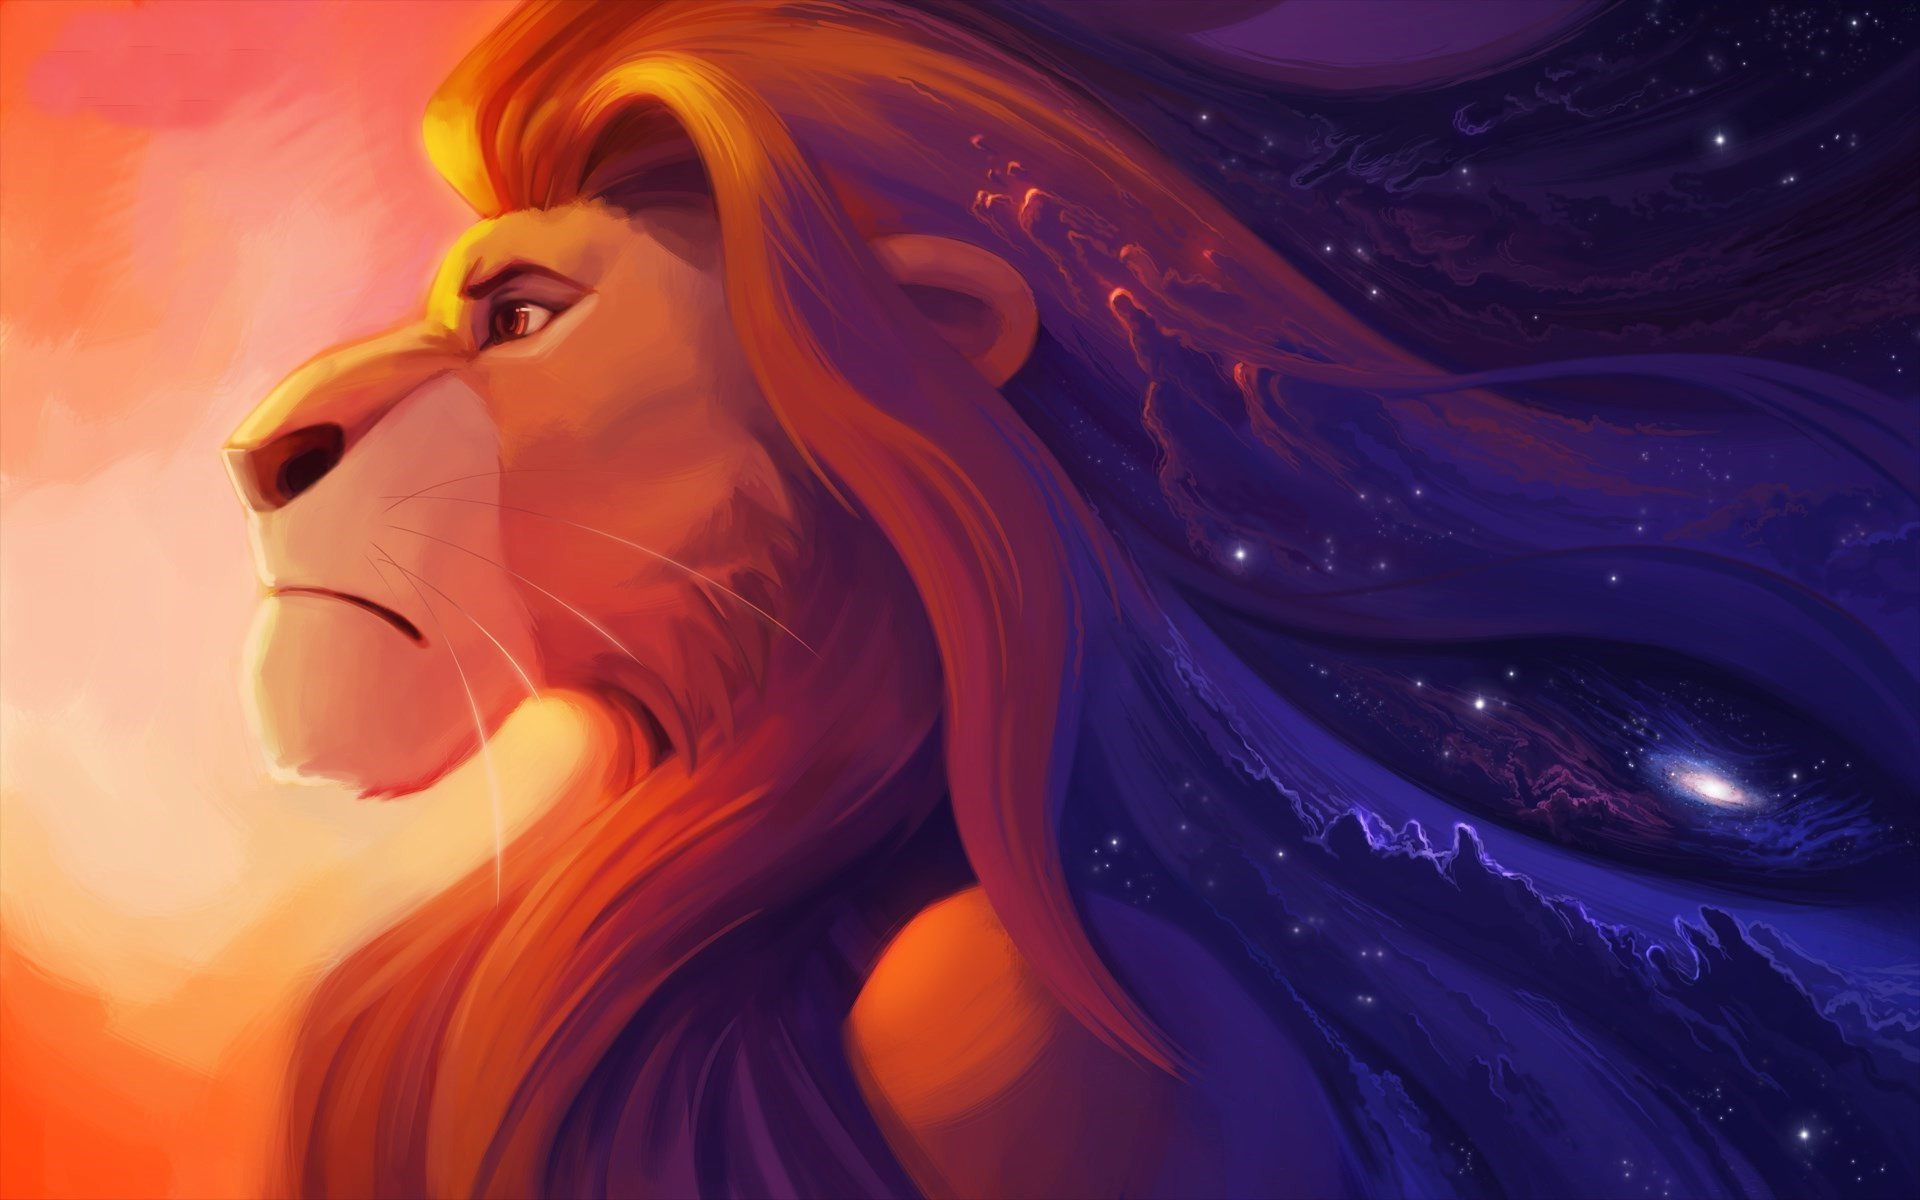 the lion king wallpaper pc - google keresés | disney | pinterest